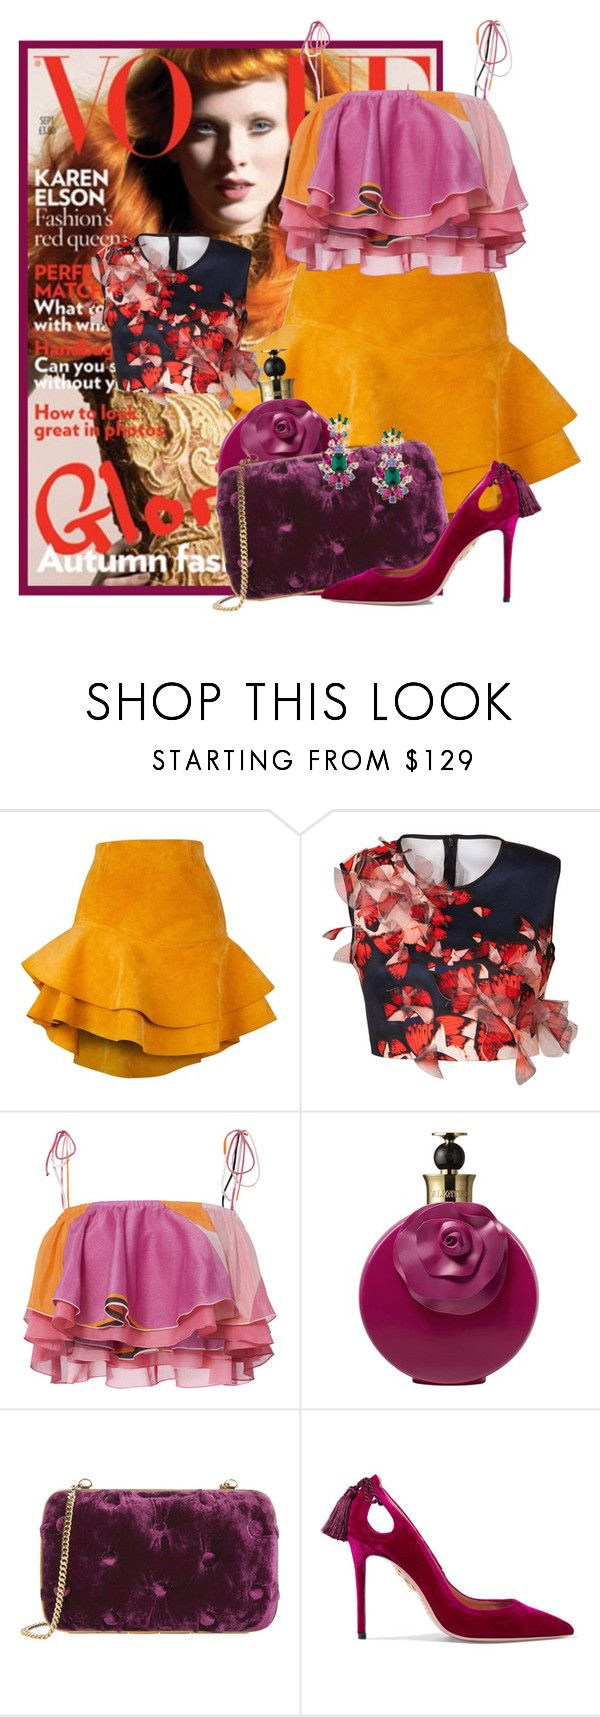 """""""Fall Delight"""" by sally92 ❤ liked on Polyvore featuring Siobhan Molloy, Clover Canyon, Emilio Pucci, Valentino, Benedetta Bruzziches, Aquazzura and Dolce&Gabbana"""